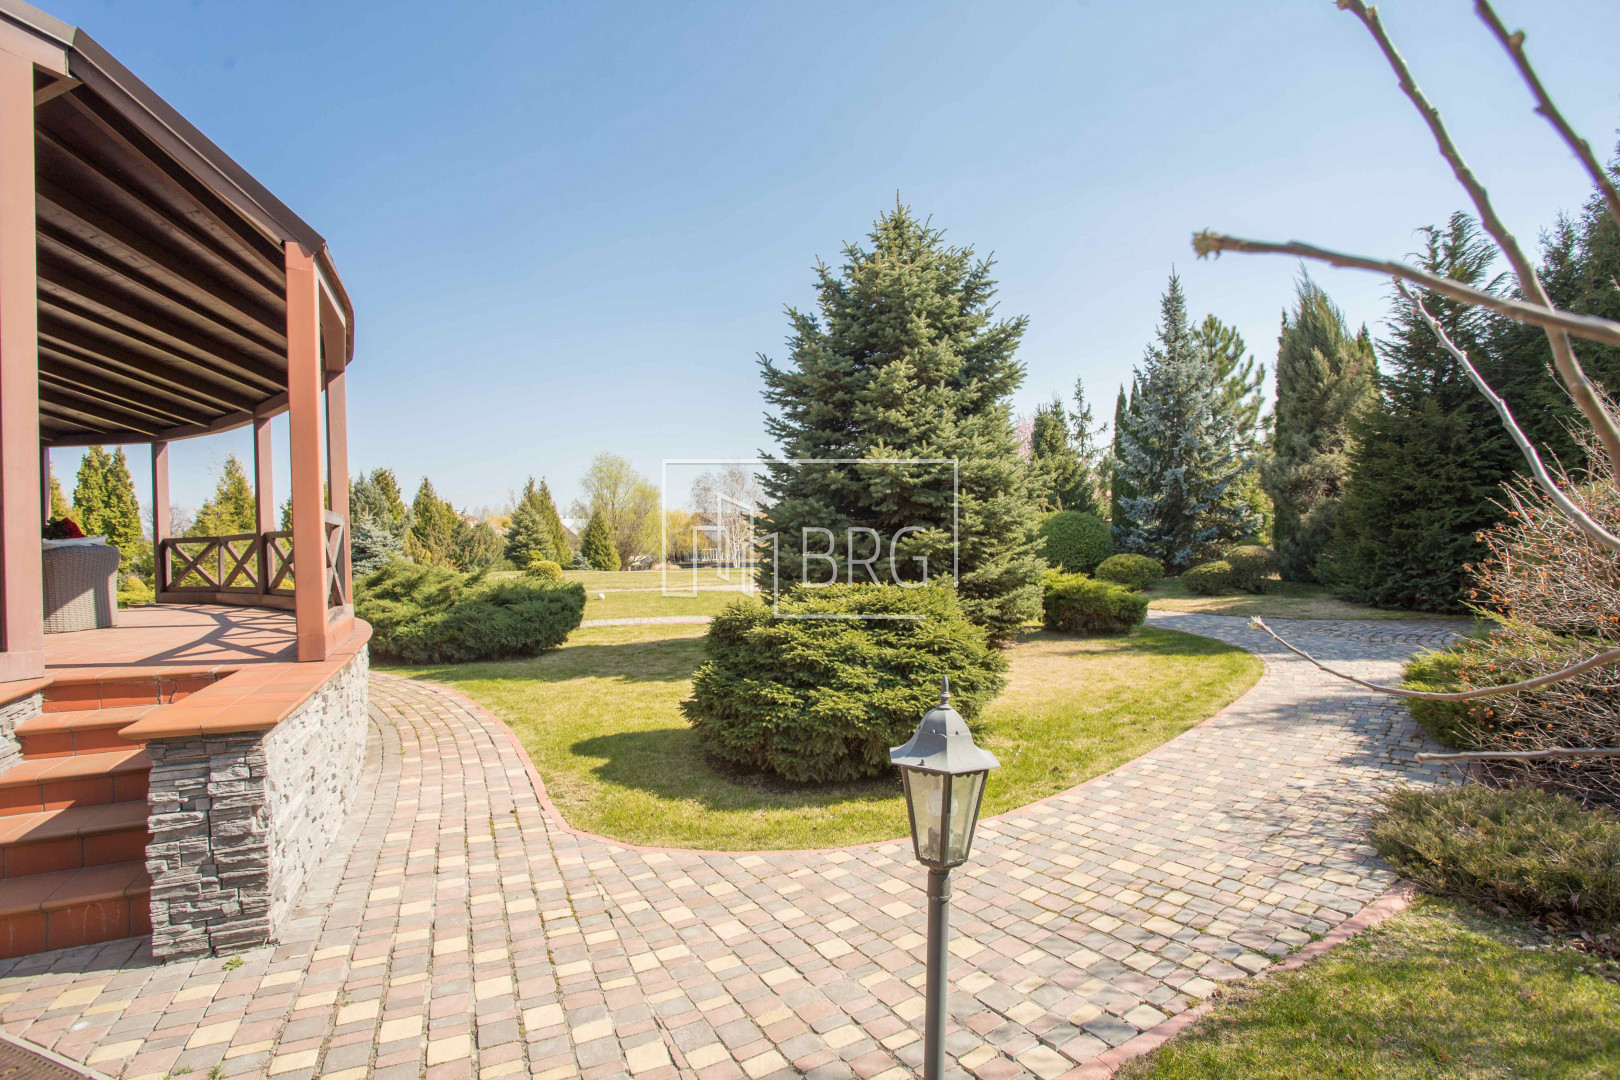 The house in Dniproprov KG Khvylya 578m with access to the Dnieper. Kiev region